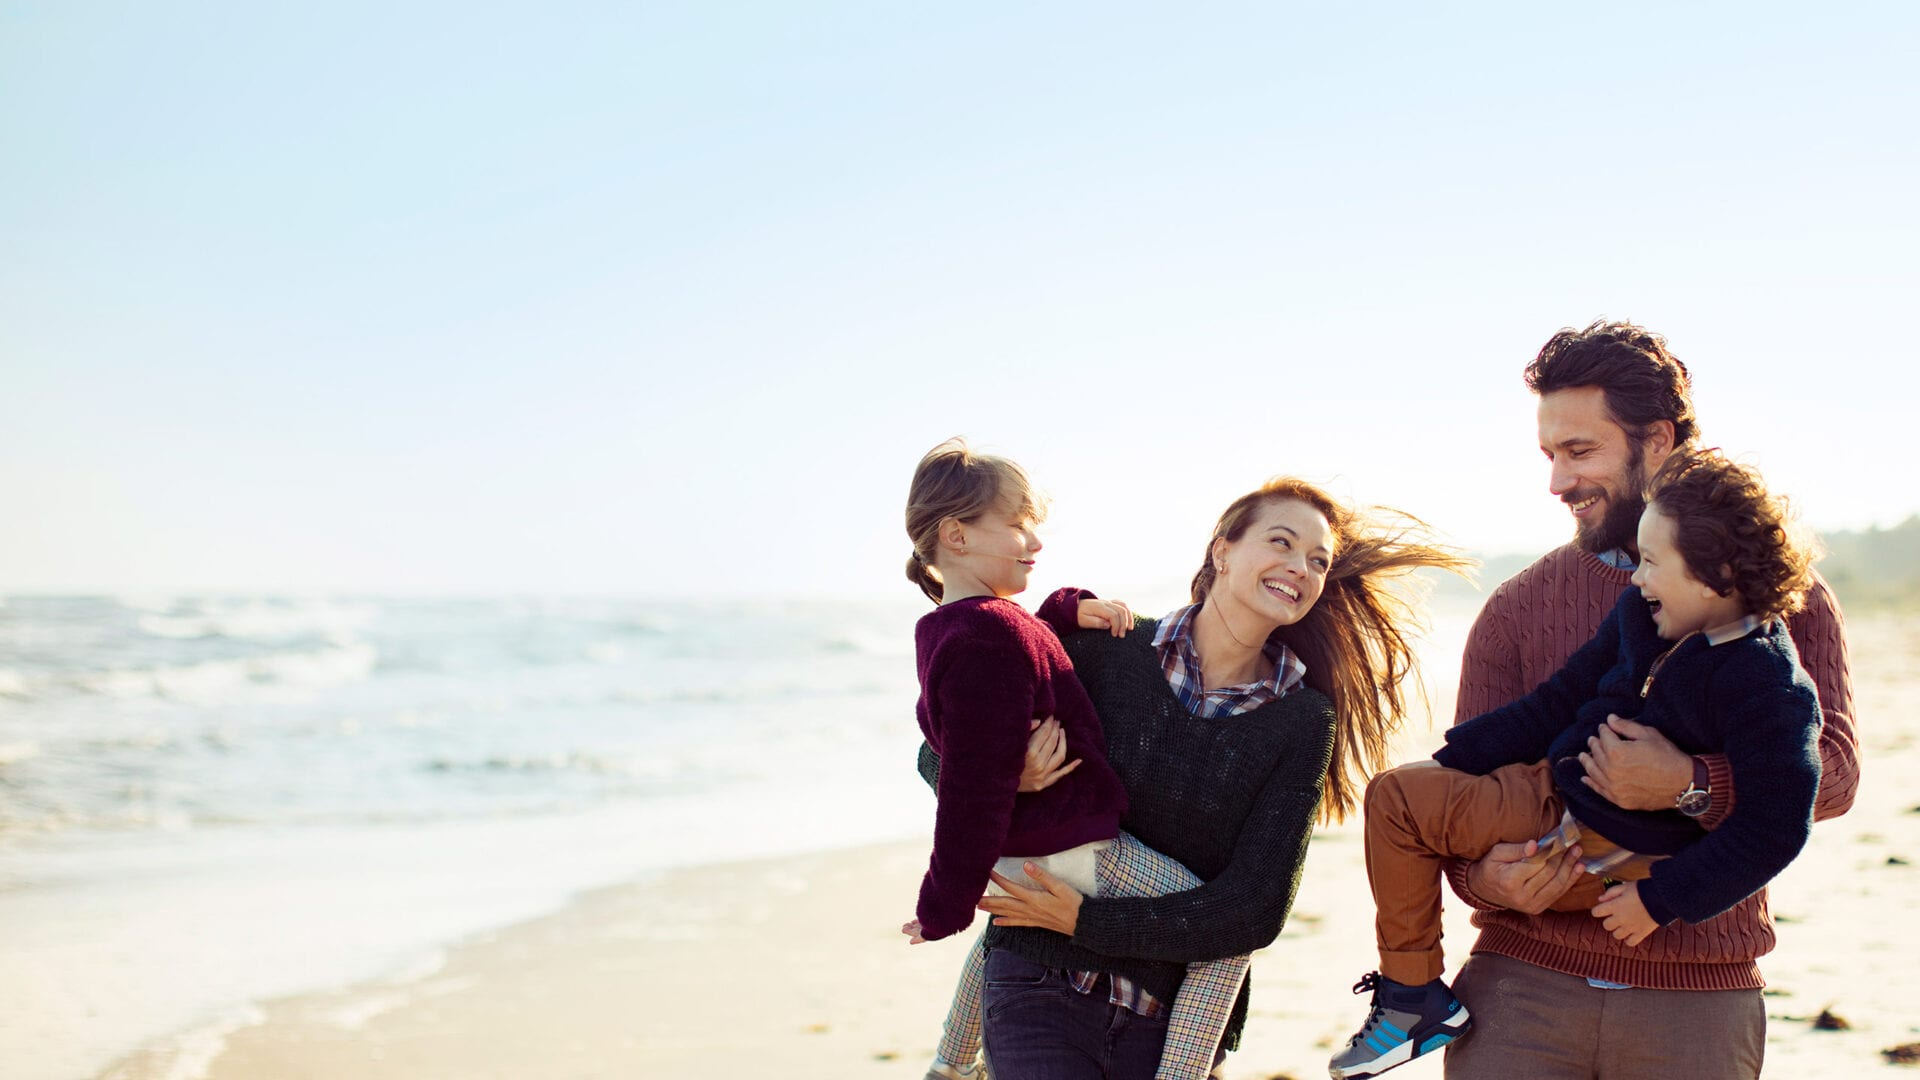 Family of four walking along beach in cool weather